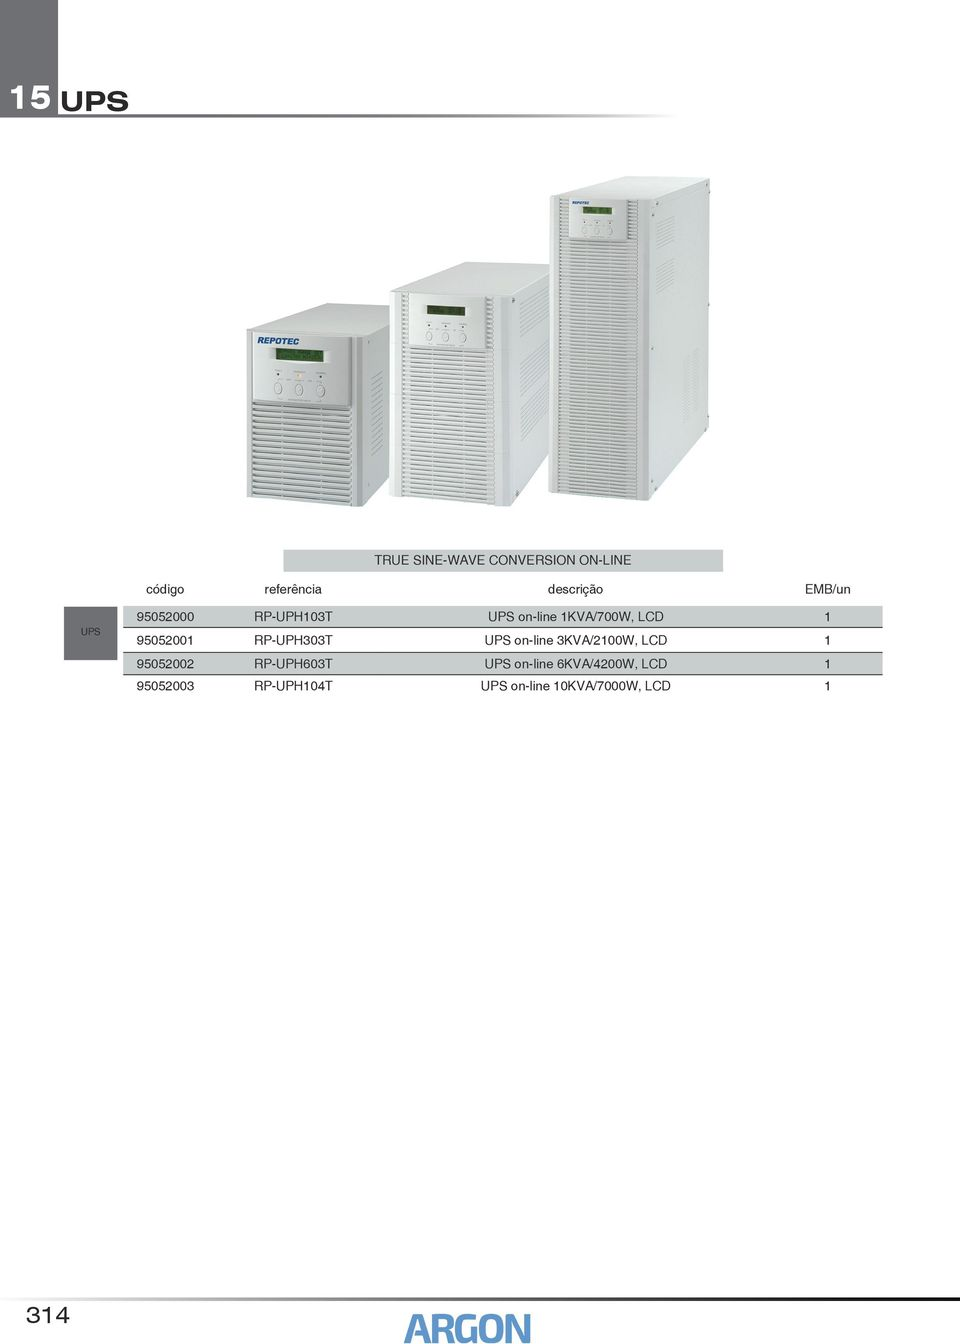 on-line 3KVA/2100W, LCD 1 95052002 RP-UPH603T on-line